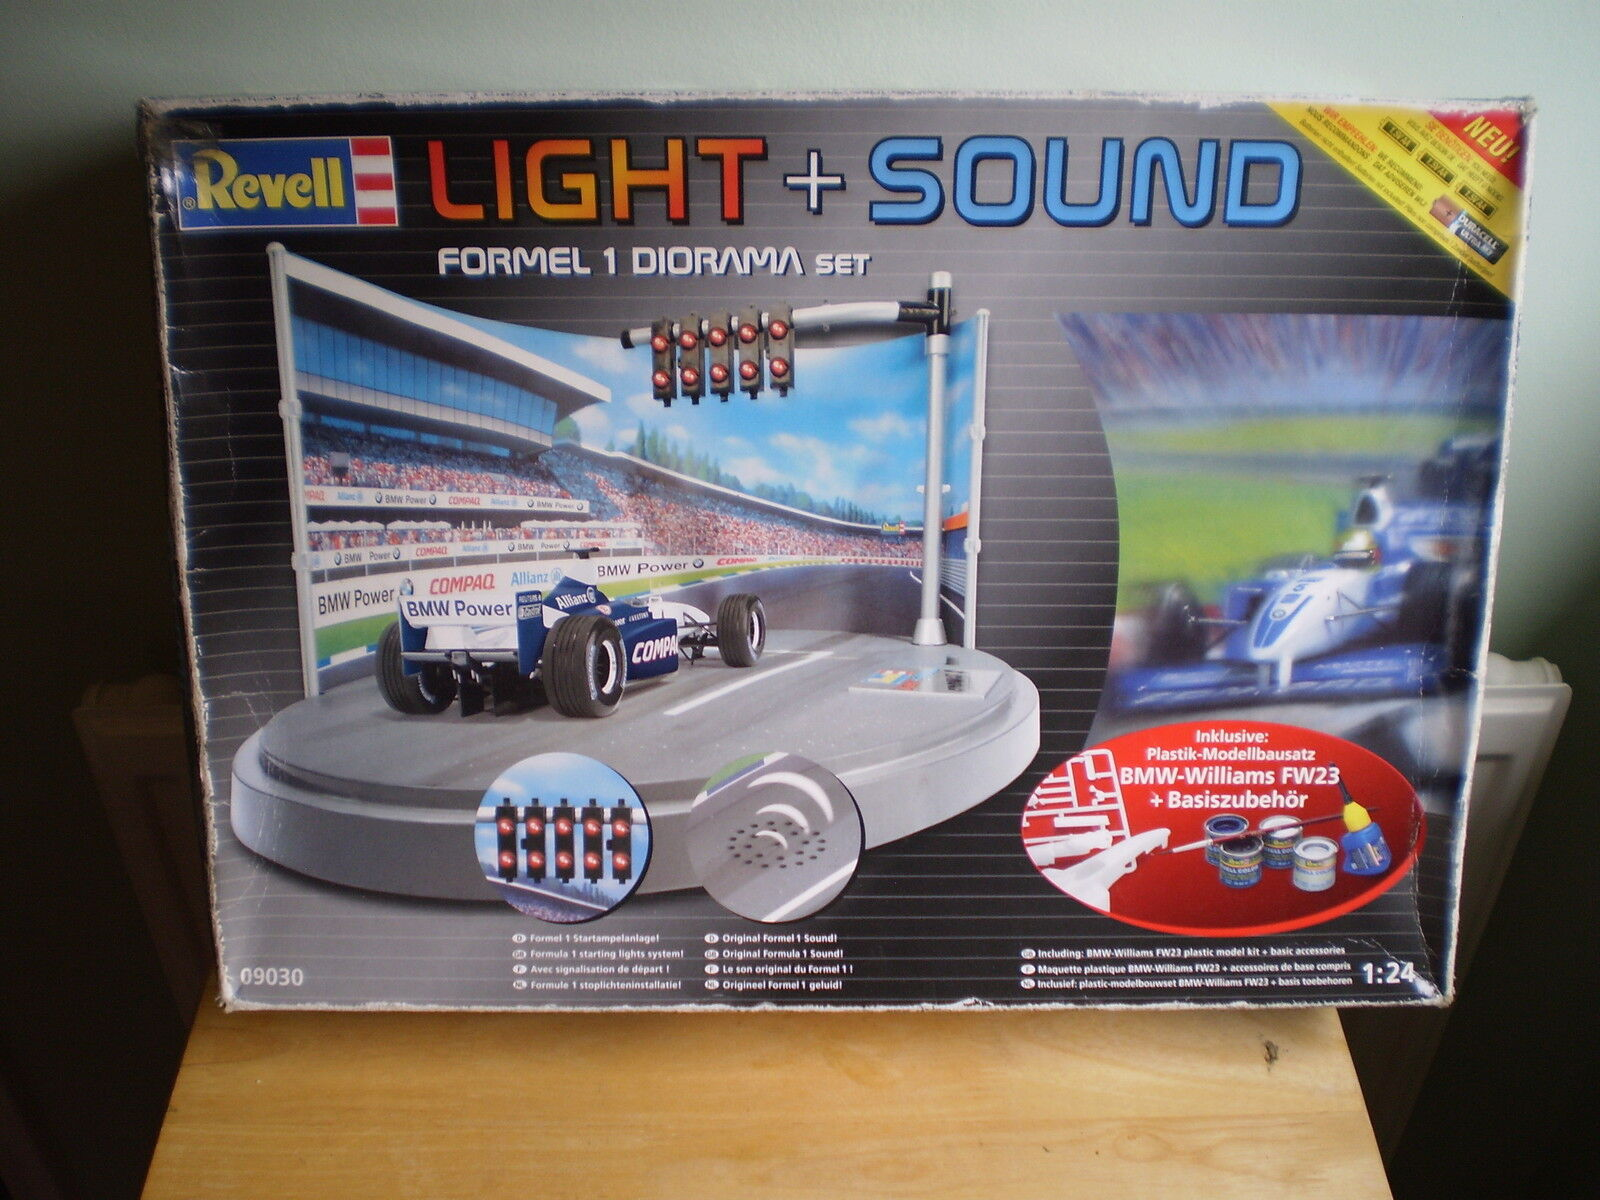 REVELL LIGHT+ SOUND 1 24 SCALE FORMULA 1 DIORAMA MODEL KIT